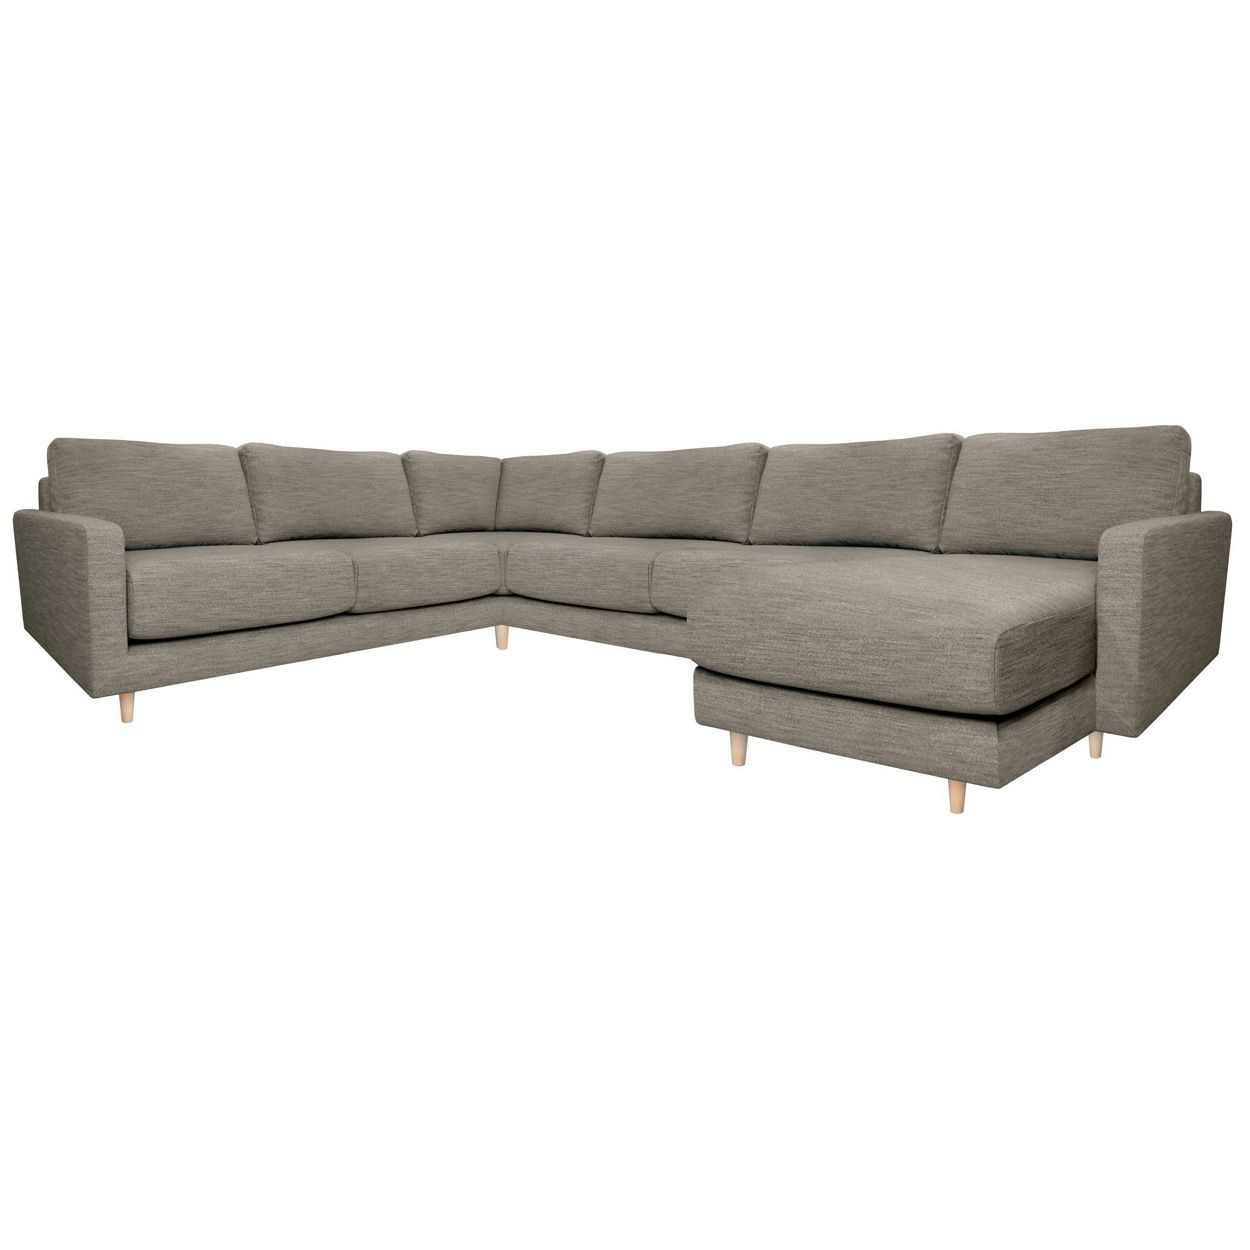 Mapperly 2 Piece Chaise Corner Unit Right Hand Facing 298 Cm X 152 Cm X 97 Cm With 3 X Fibre Back Cushions 3 X Fo Chaise Corner Corner Sofa Units Corner Sofa